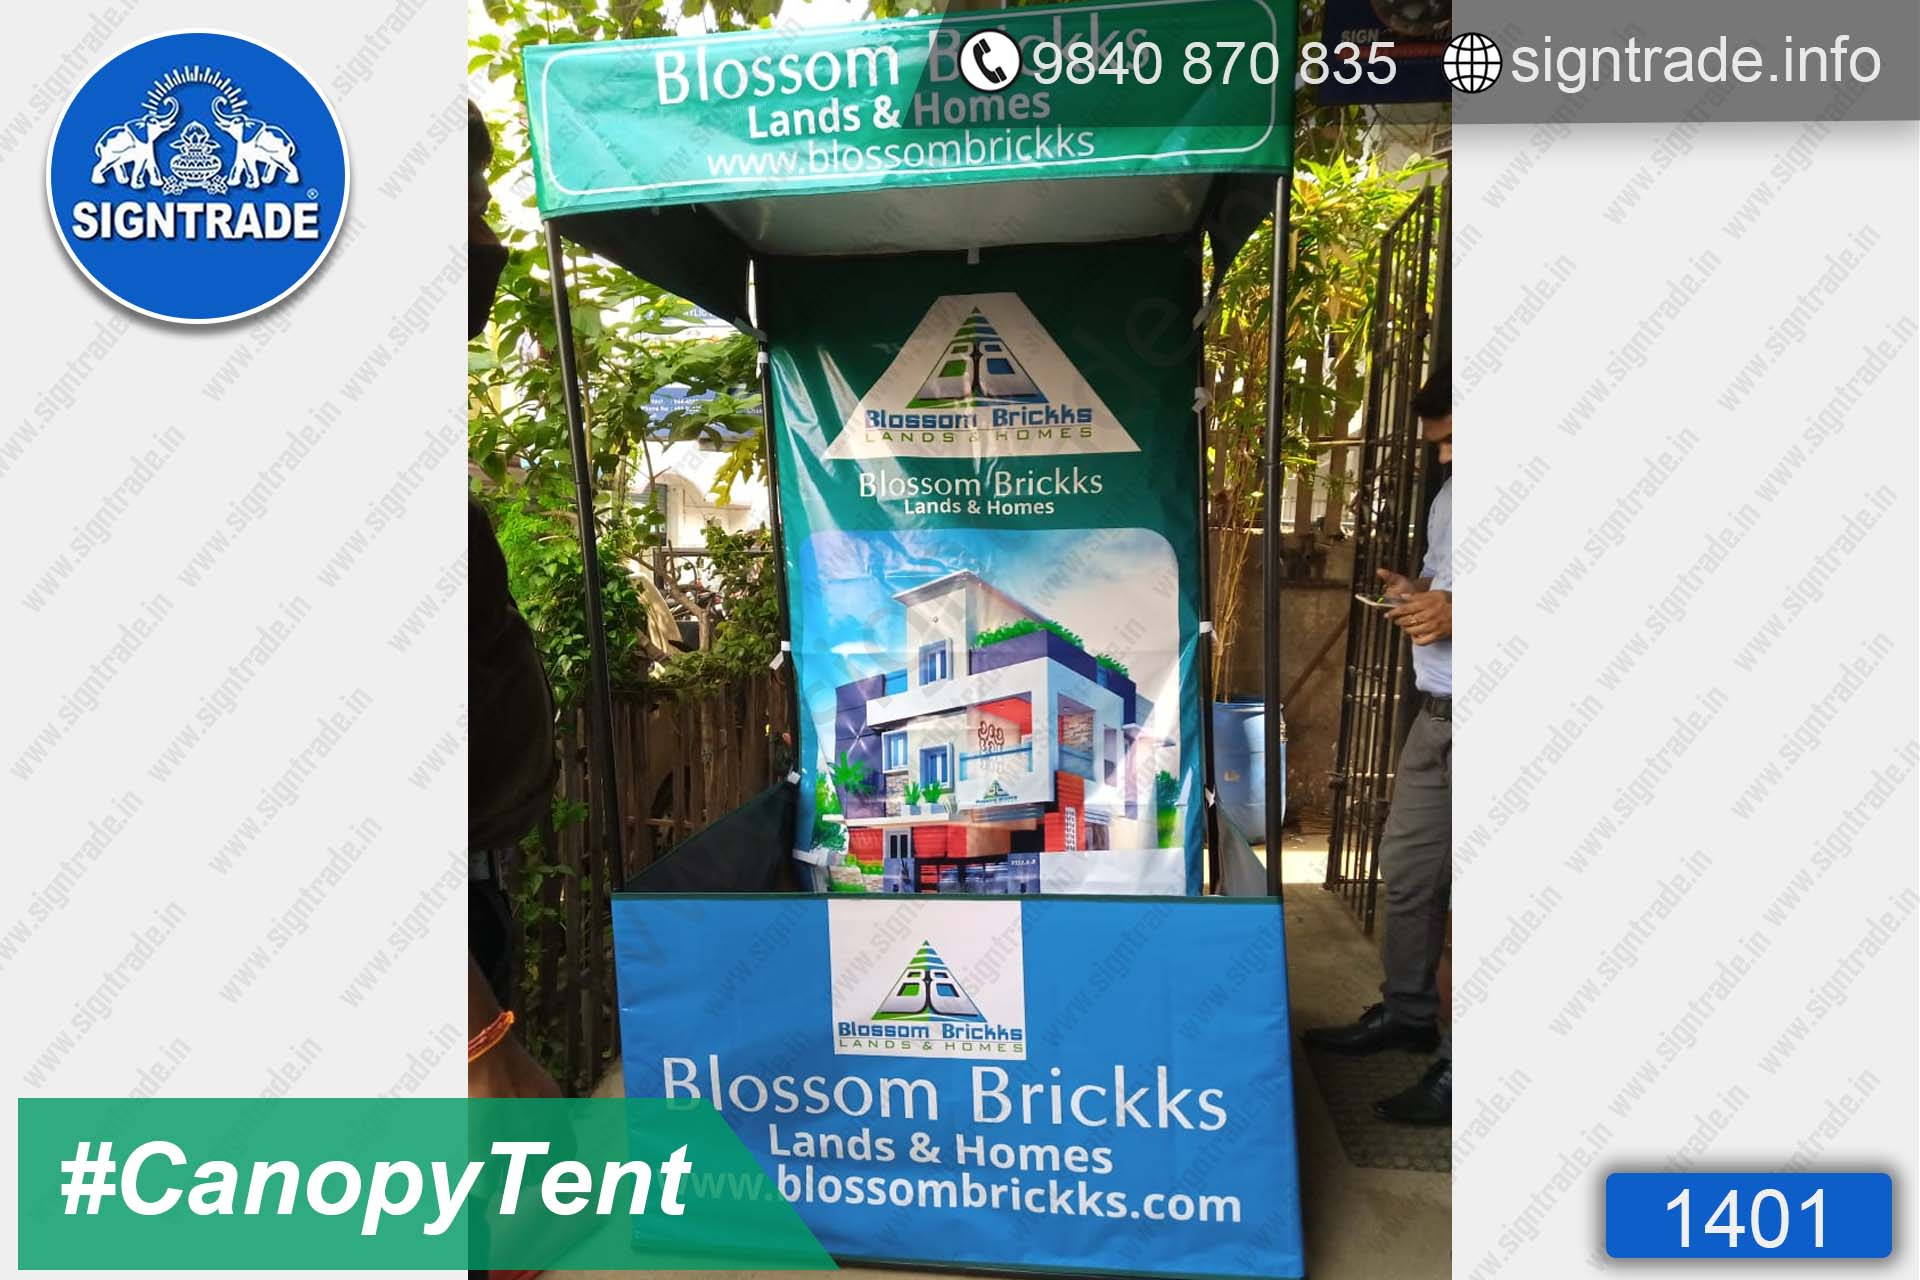 Blossom Brickks (Lands & Homes) - 1401, Canopy tent, Flat roof tent, Promo tent, Promotional tent, Advertising tent, Promo Flag